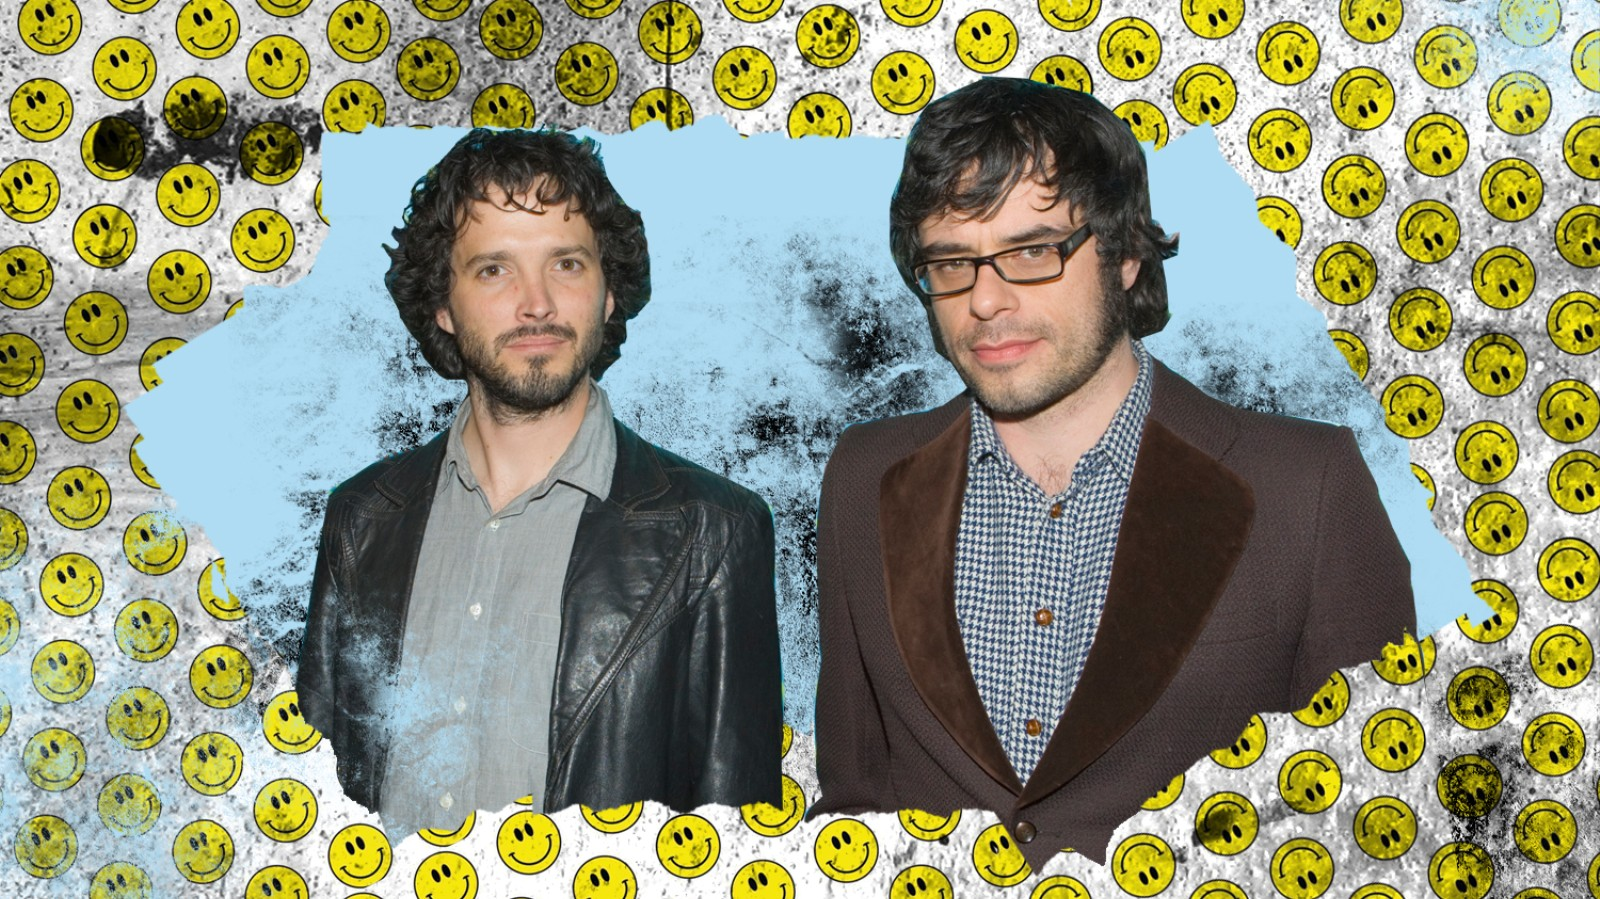 Flight of the Conchords' Best Song Was Also Their Least Funny One